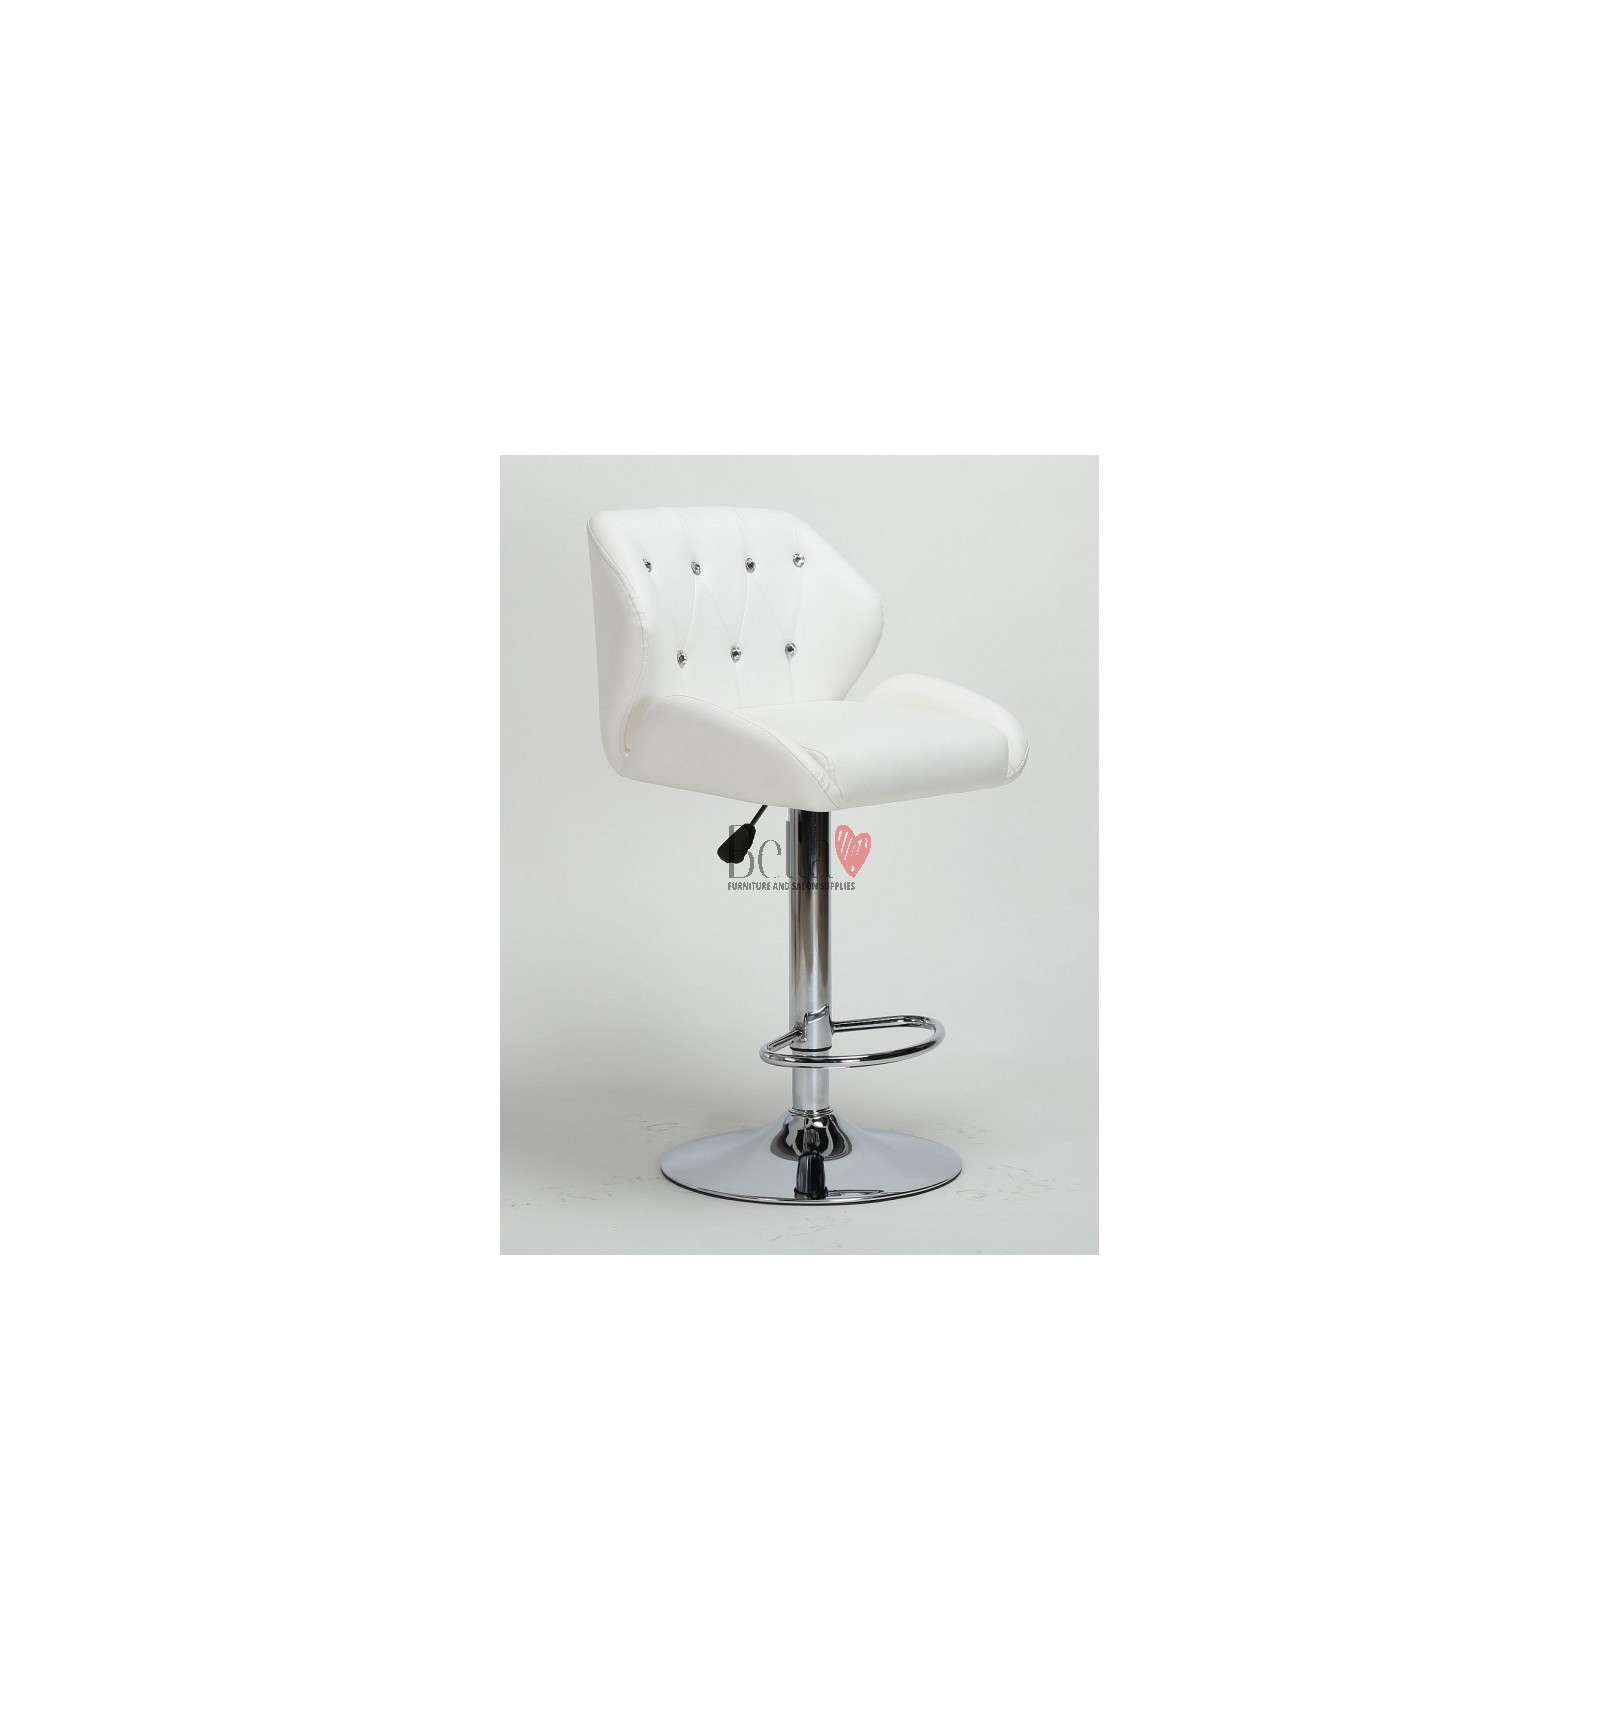 makeup chairs upholstered arm chair and reception high for sale ireland white bfhc949w